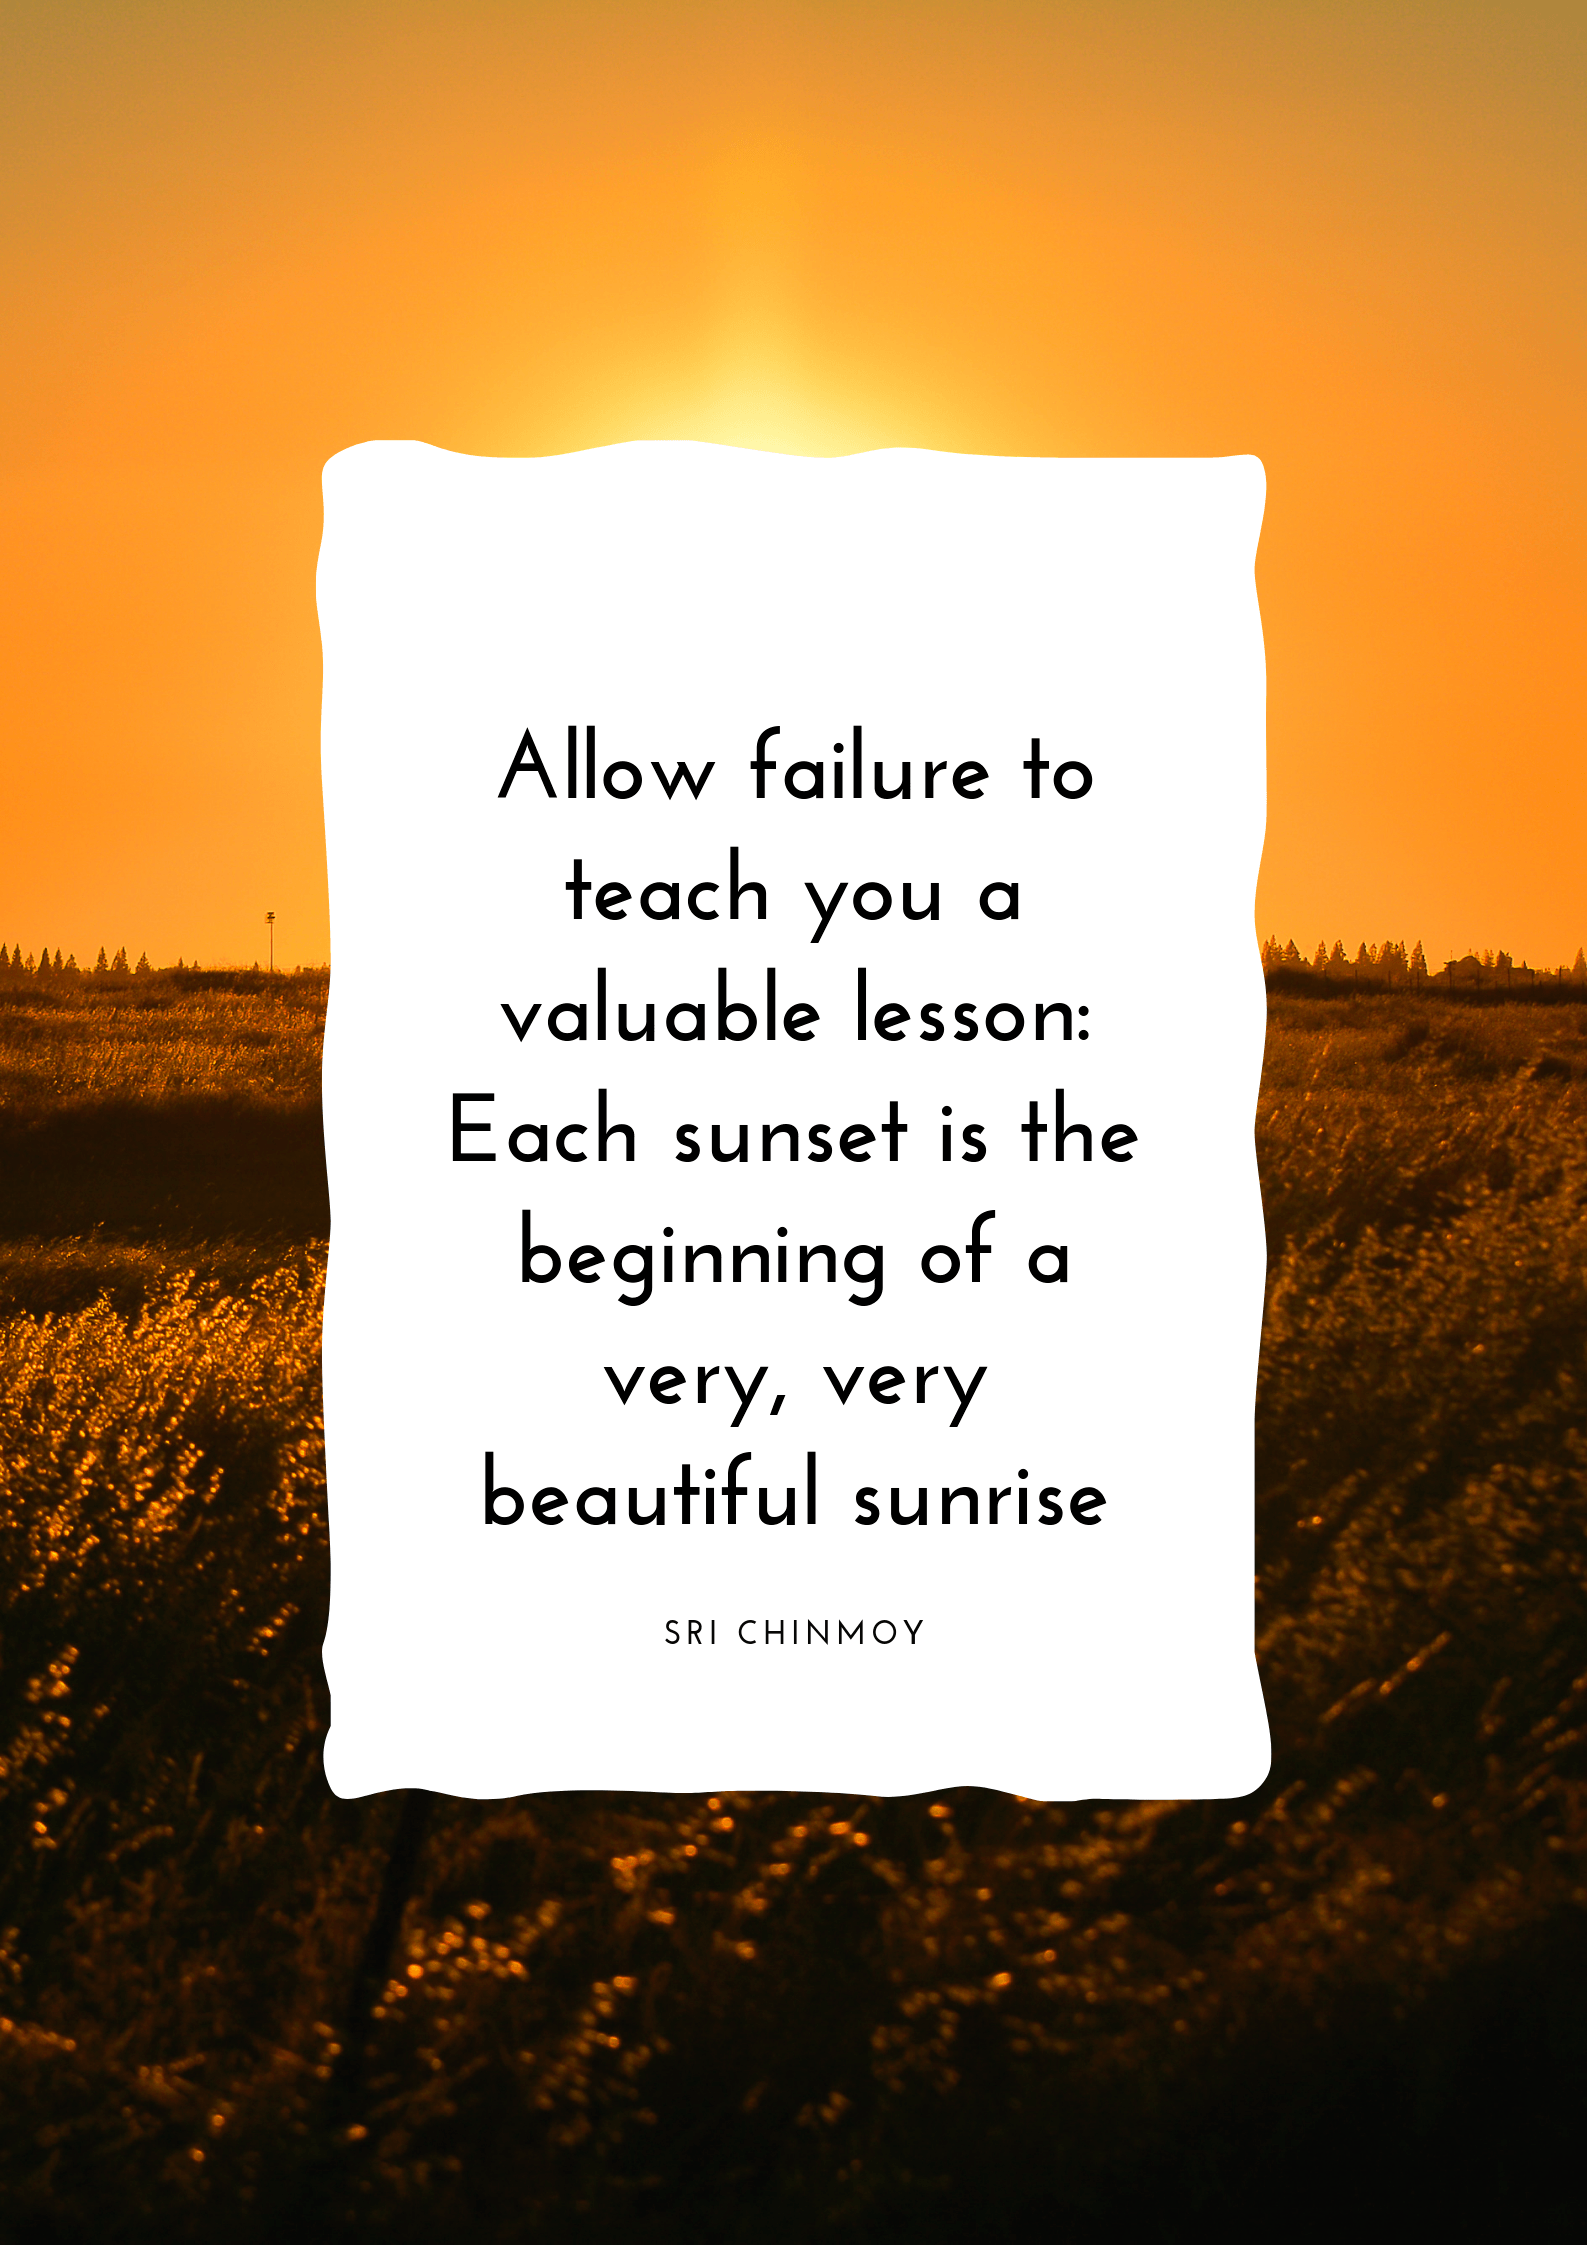 Best Sunset Quotes In 2020 Sunset Quotes Surfing Quotes Feel Good Quotes